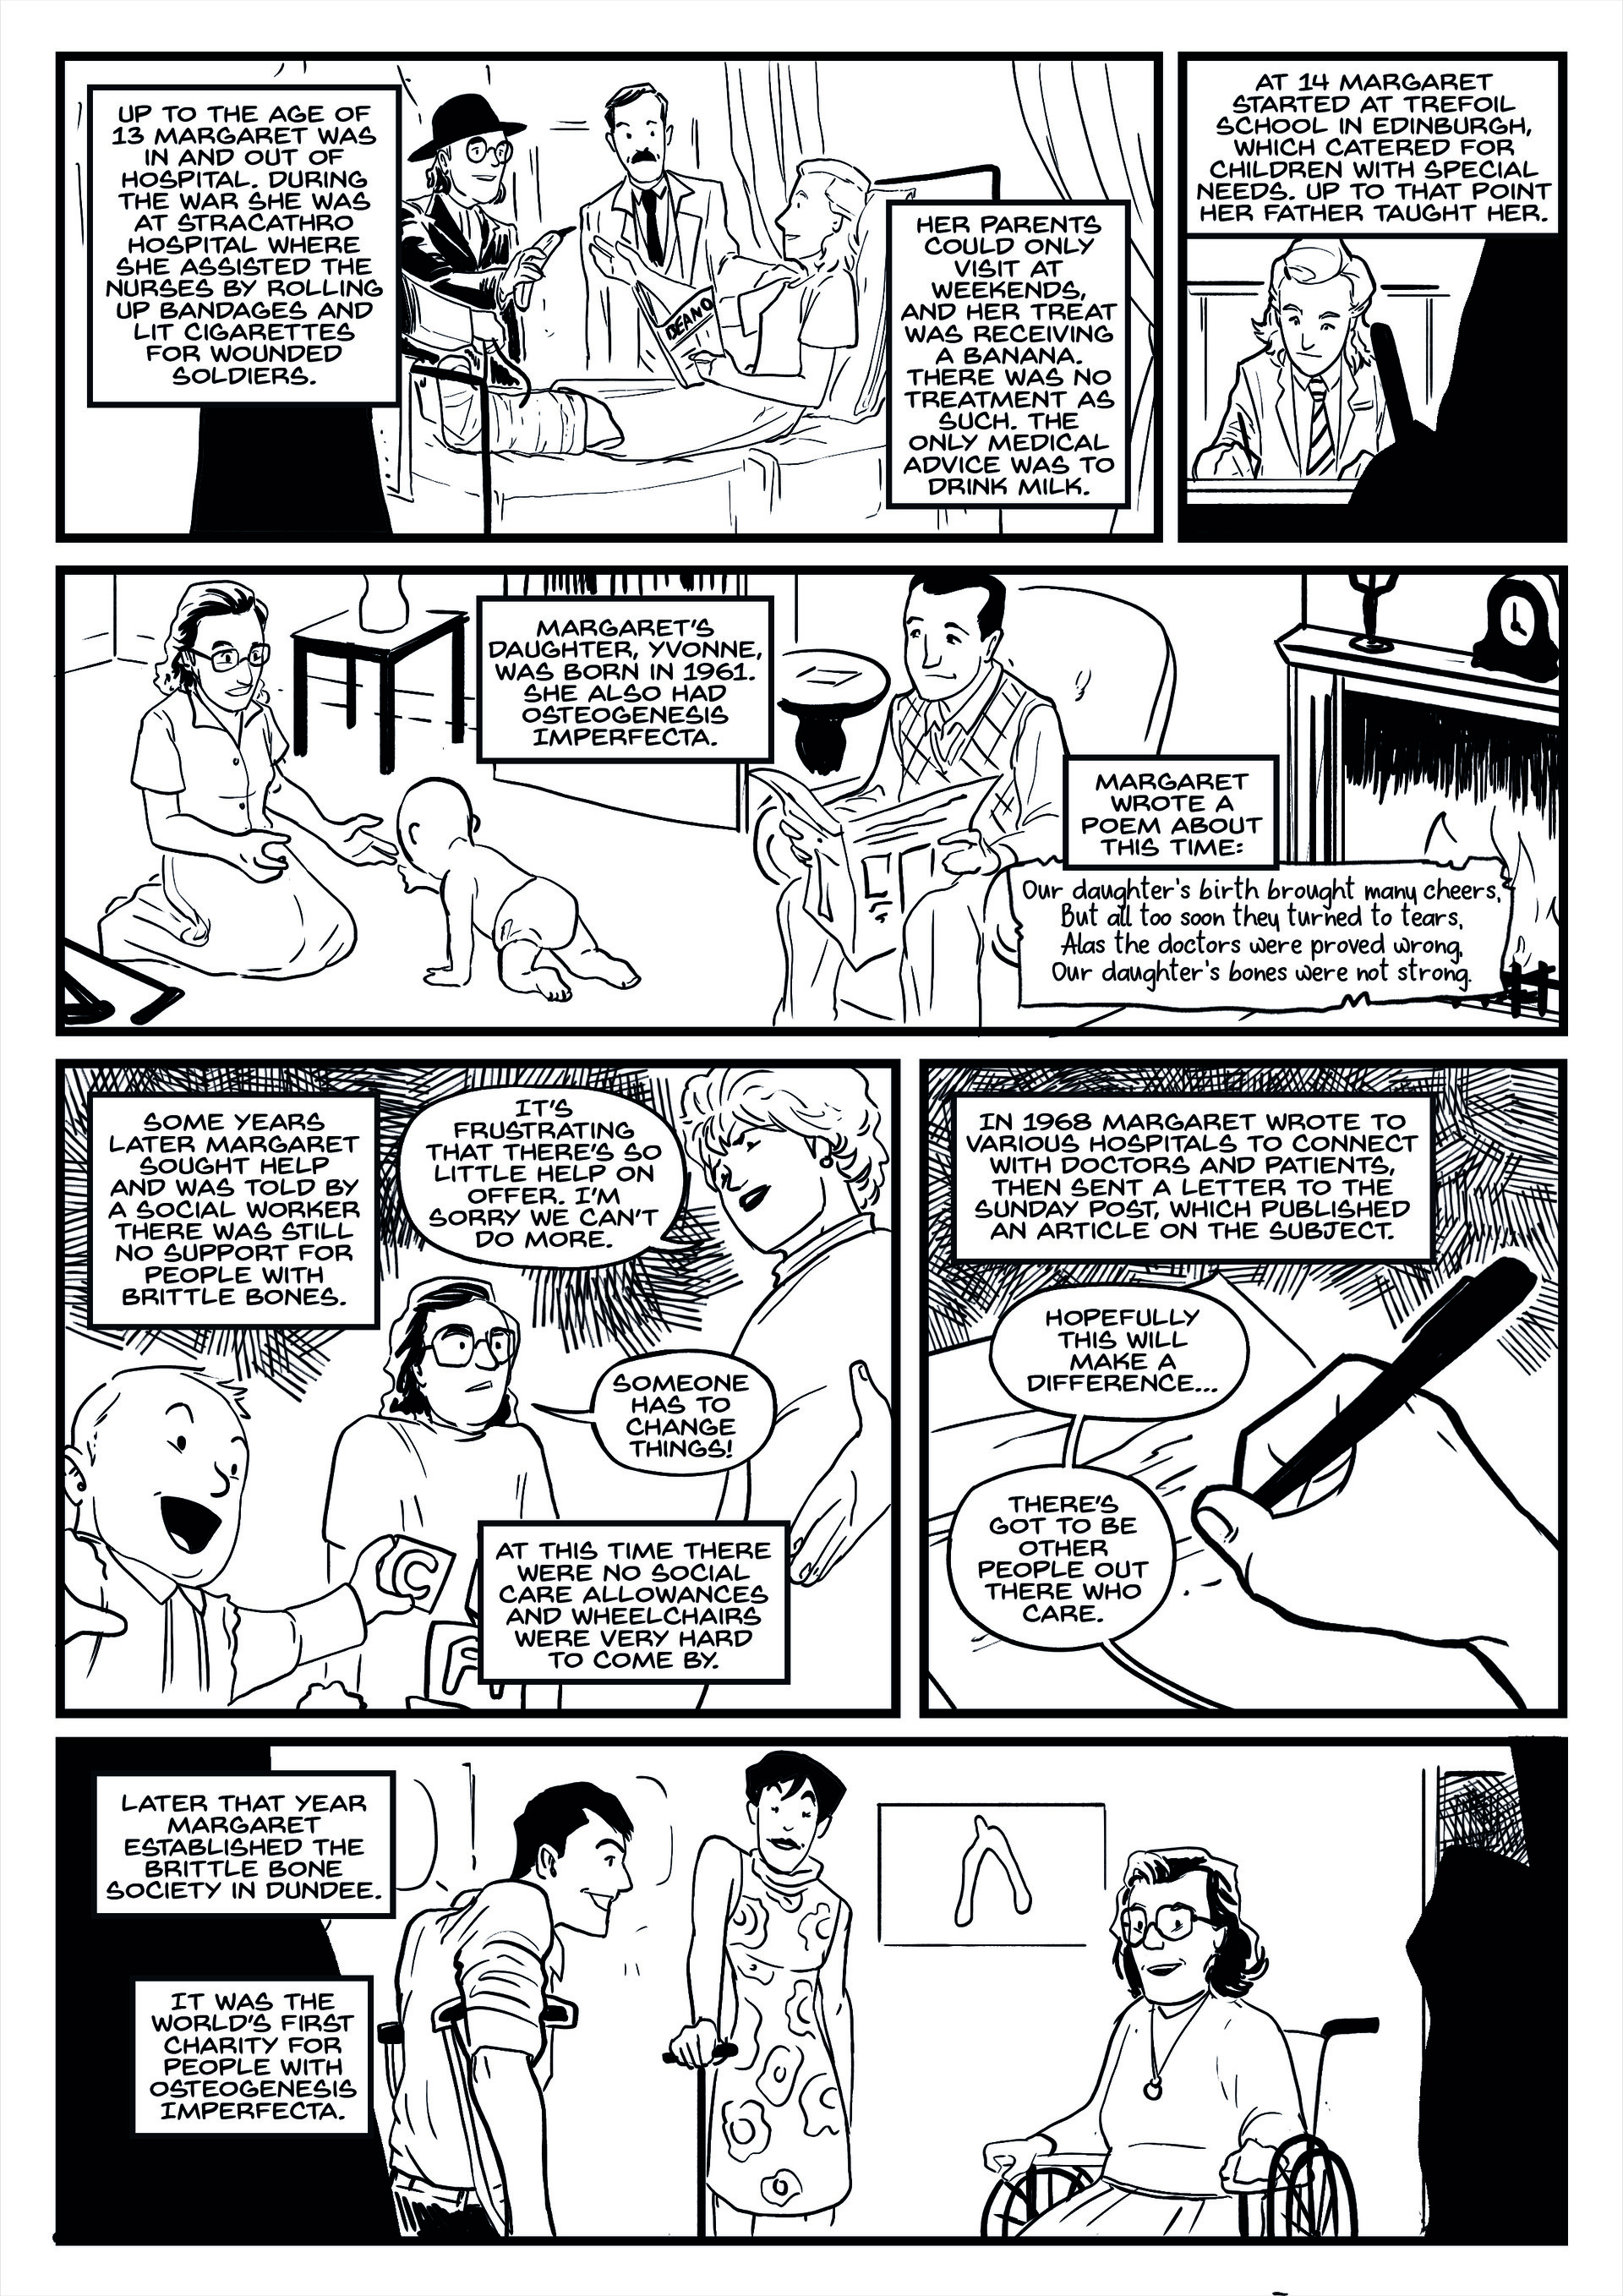 Elliot balson brittle bone society comic page 2 inks